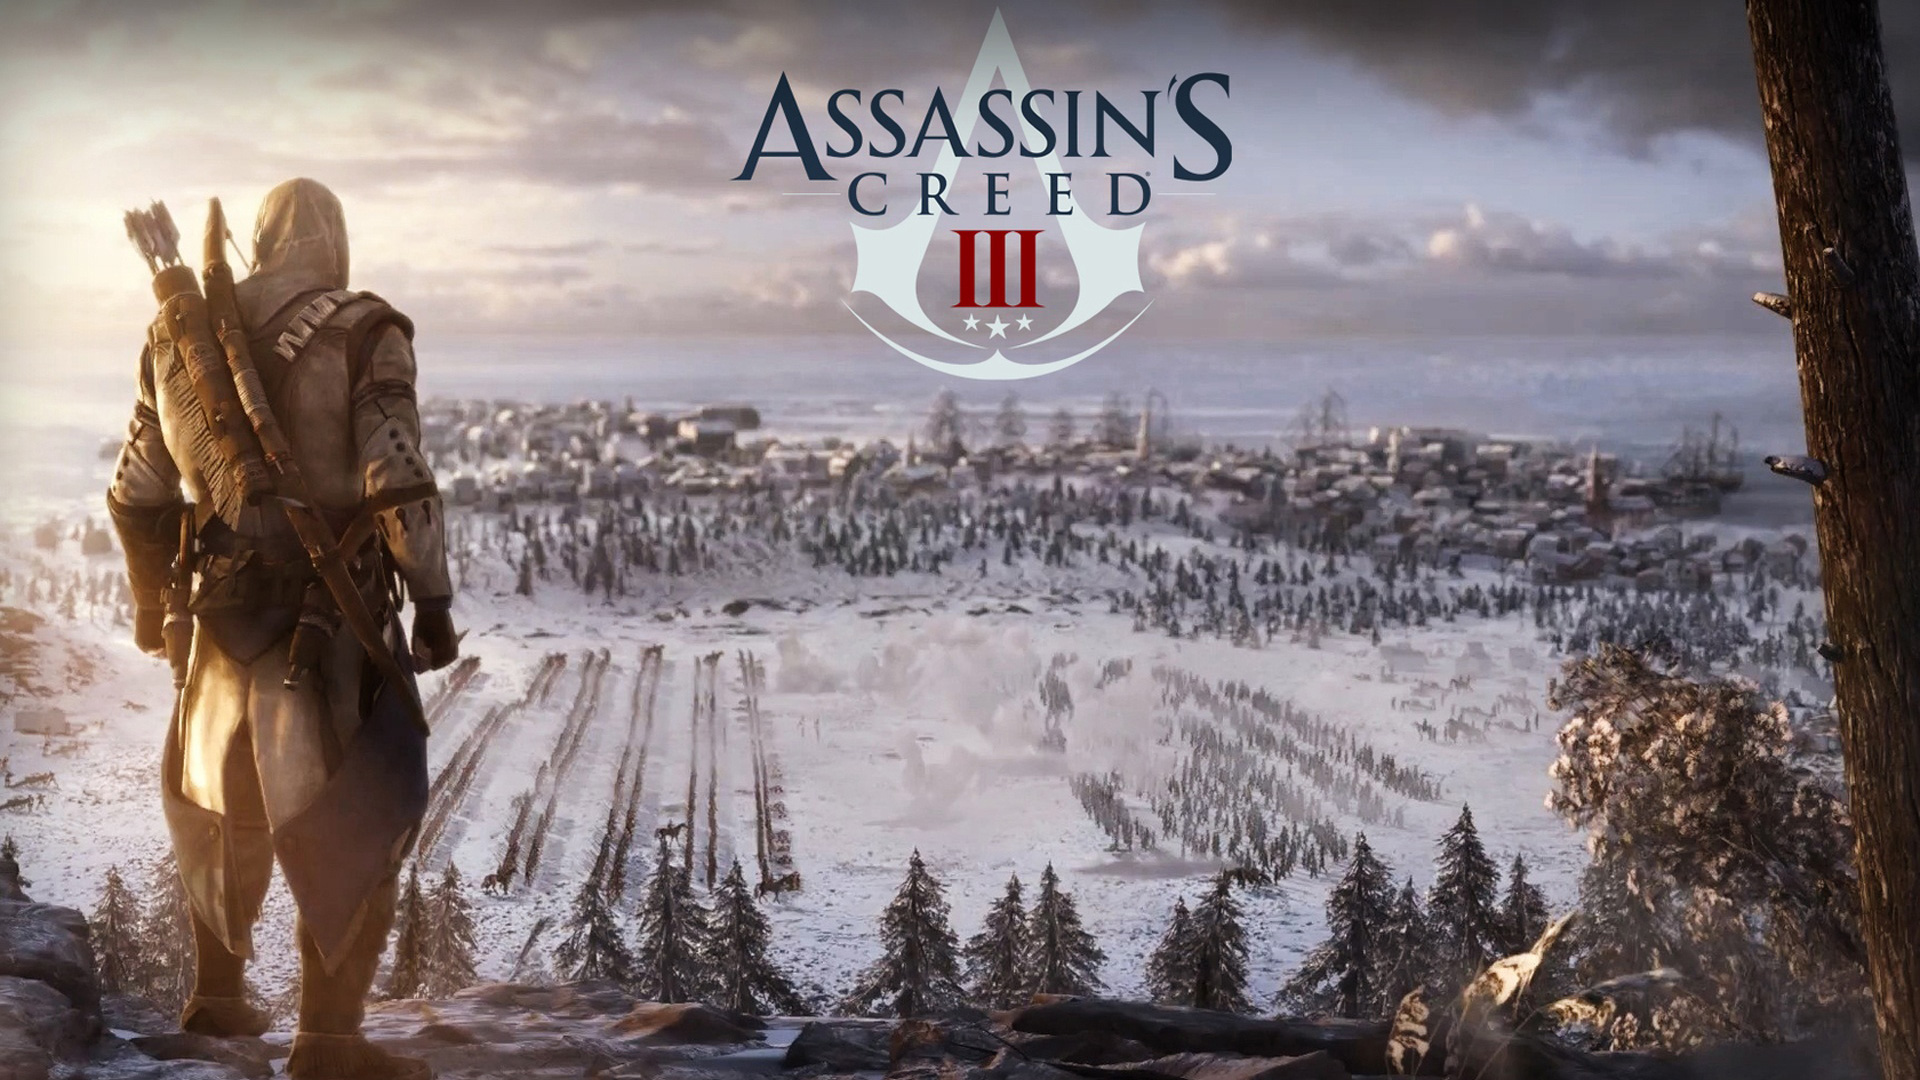 Free Assassin's Creed III Wallpaper in 1920x1080